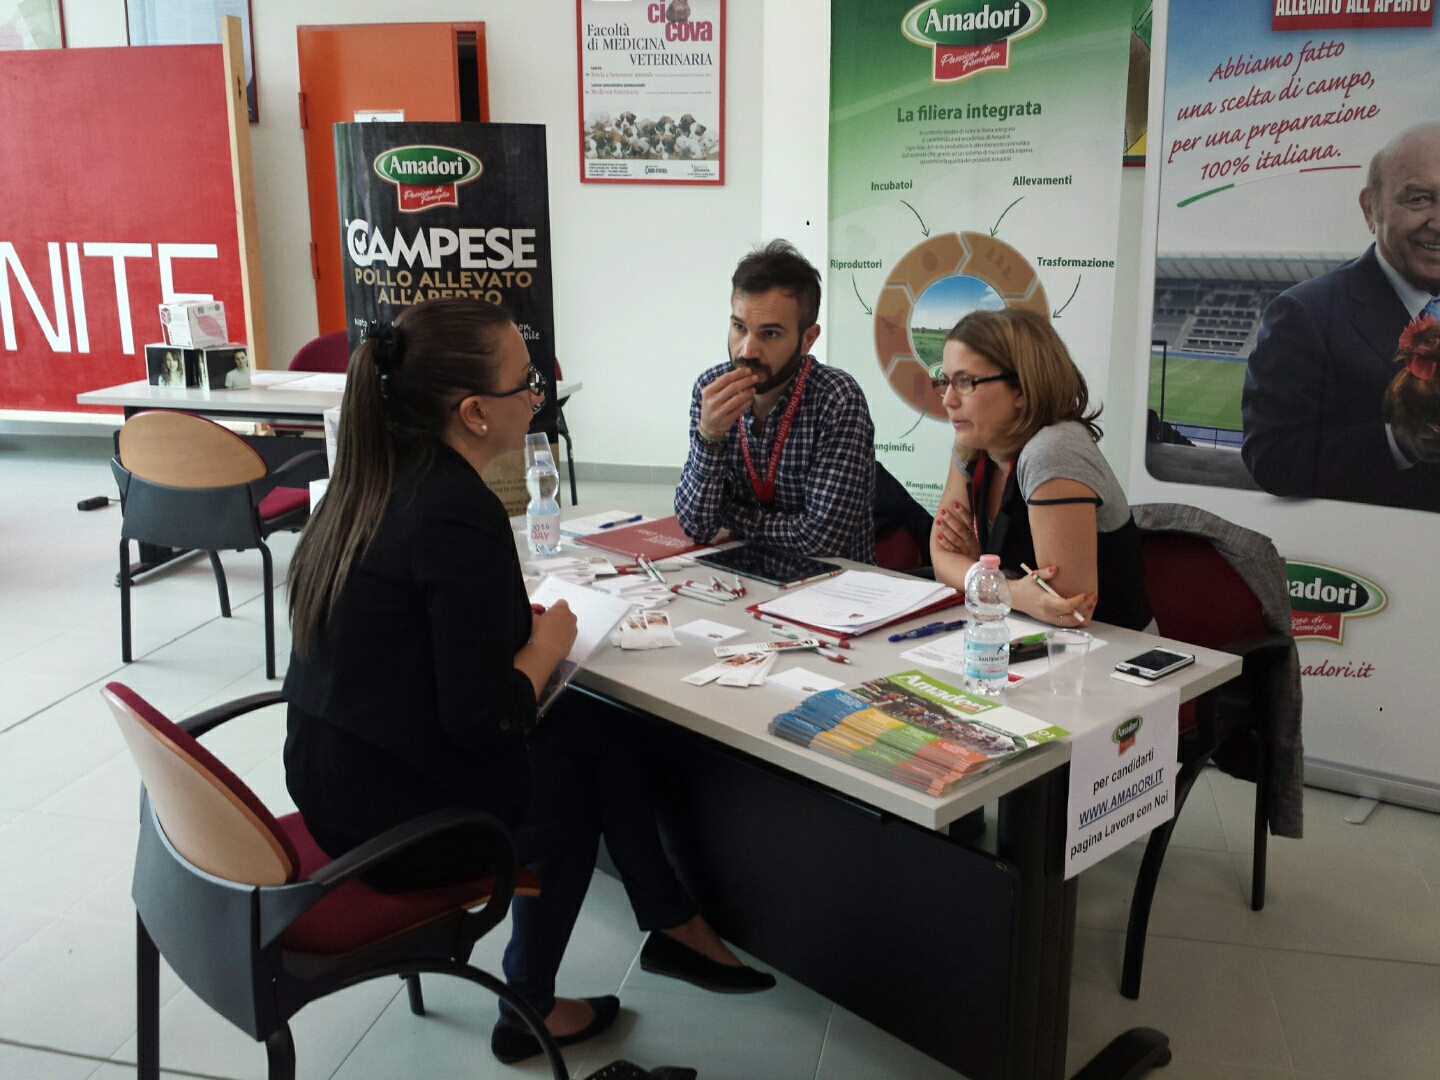 Career Day 2014: laureati e laureandi incontrano le aziende